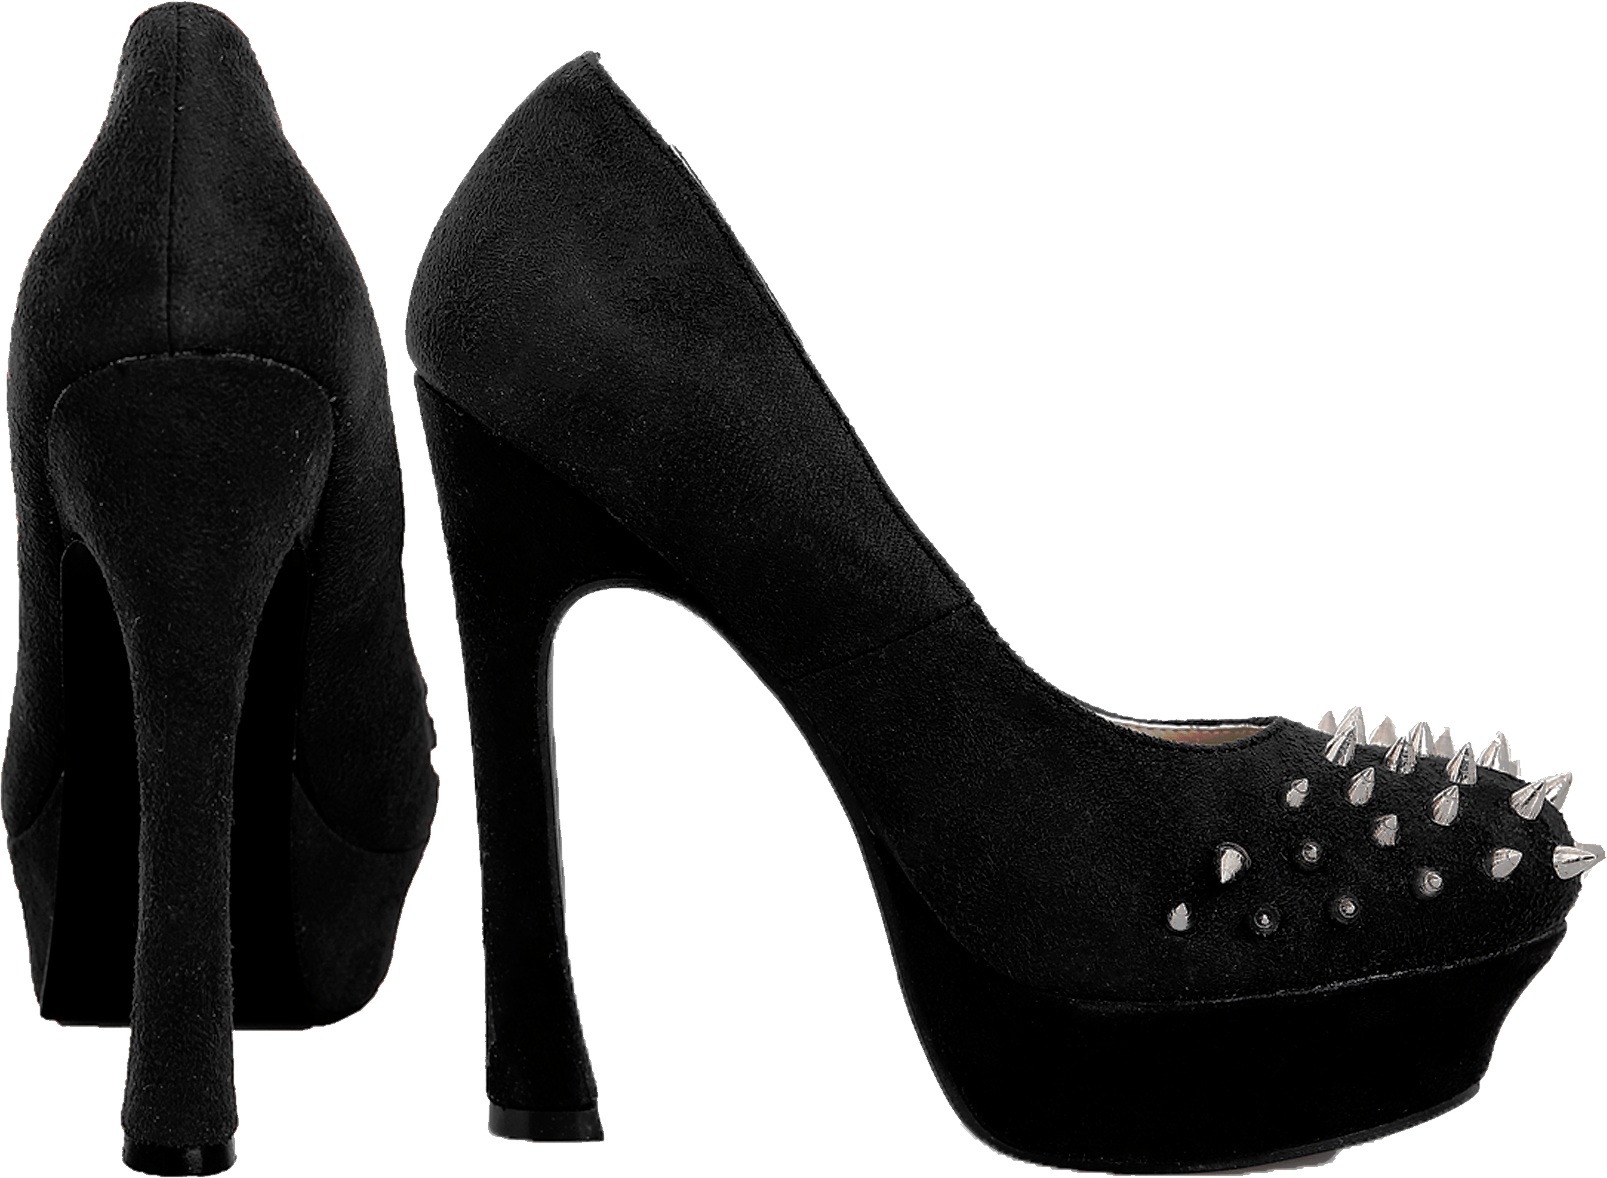 Black Women Shoes Png Image PNG Image